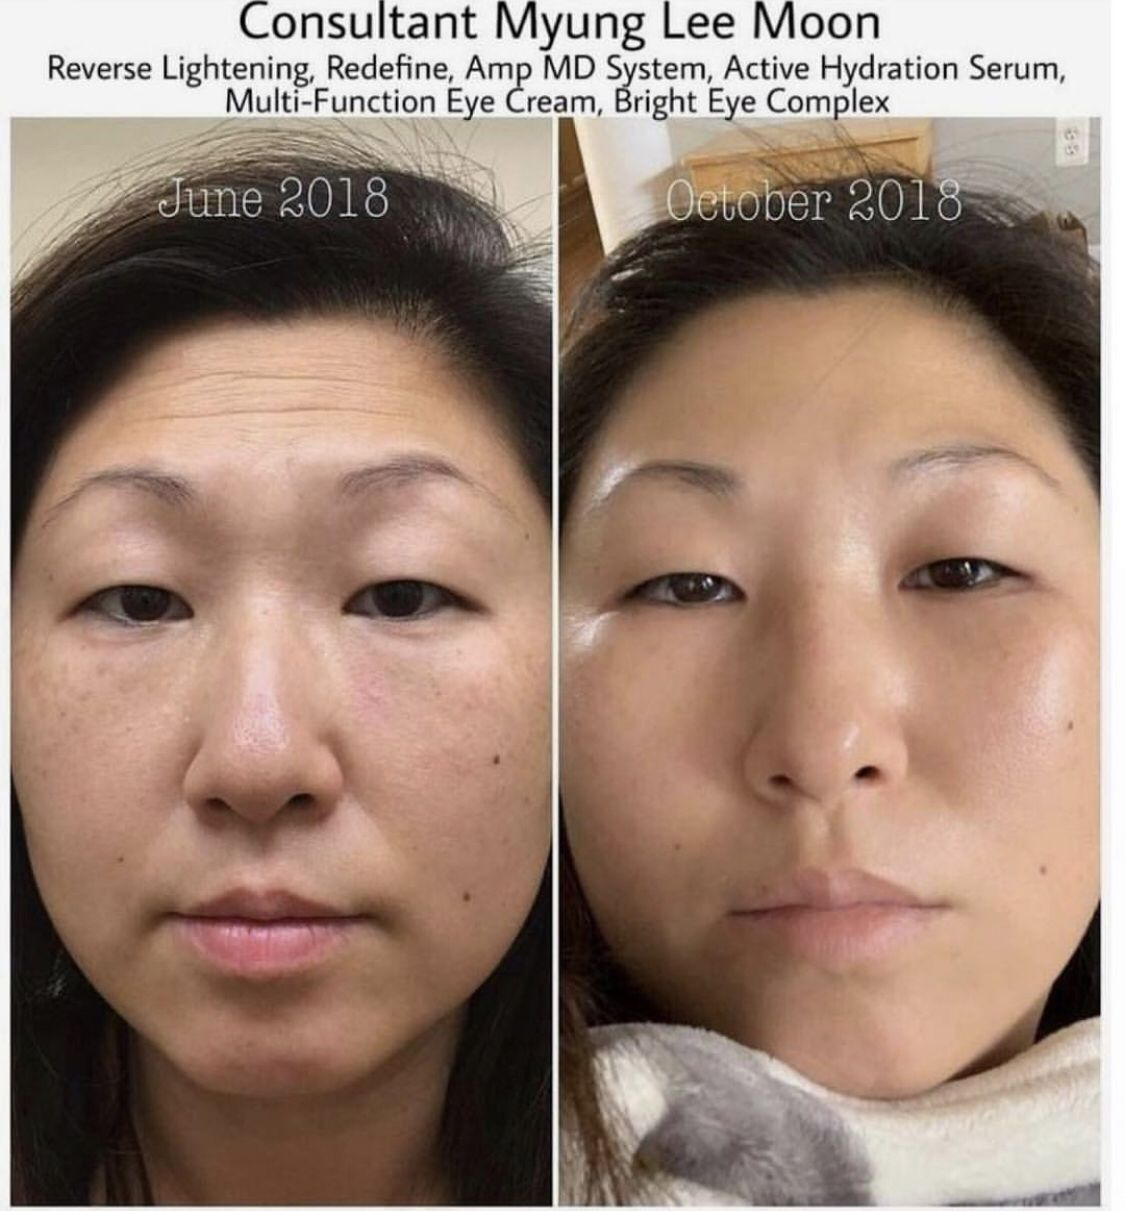 Roll Into The New Year With New Skin Rodan Fields Skincare Rodan And Fields Natural Anti Aging Skin Care Natural Skin Care Regimen